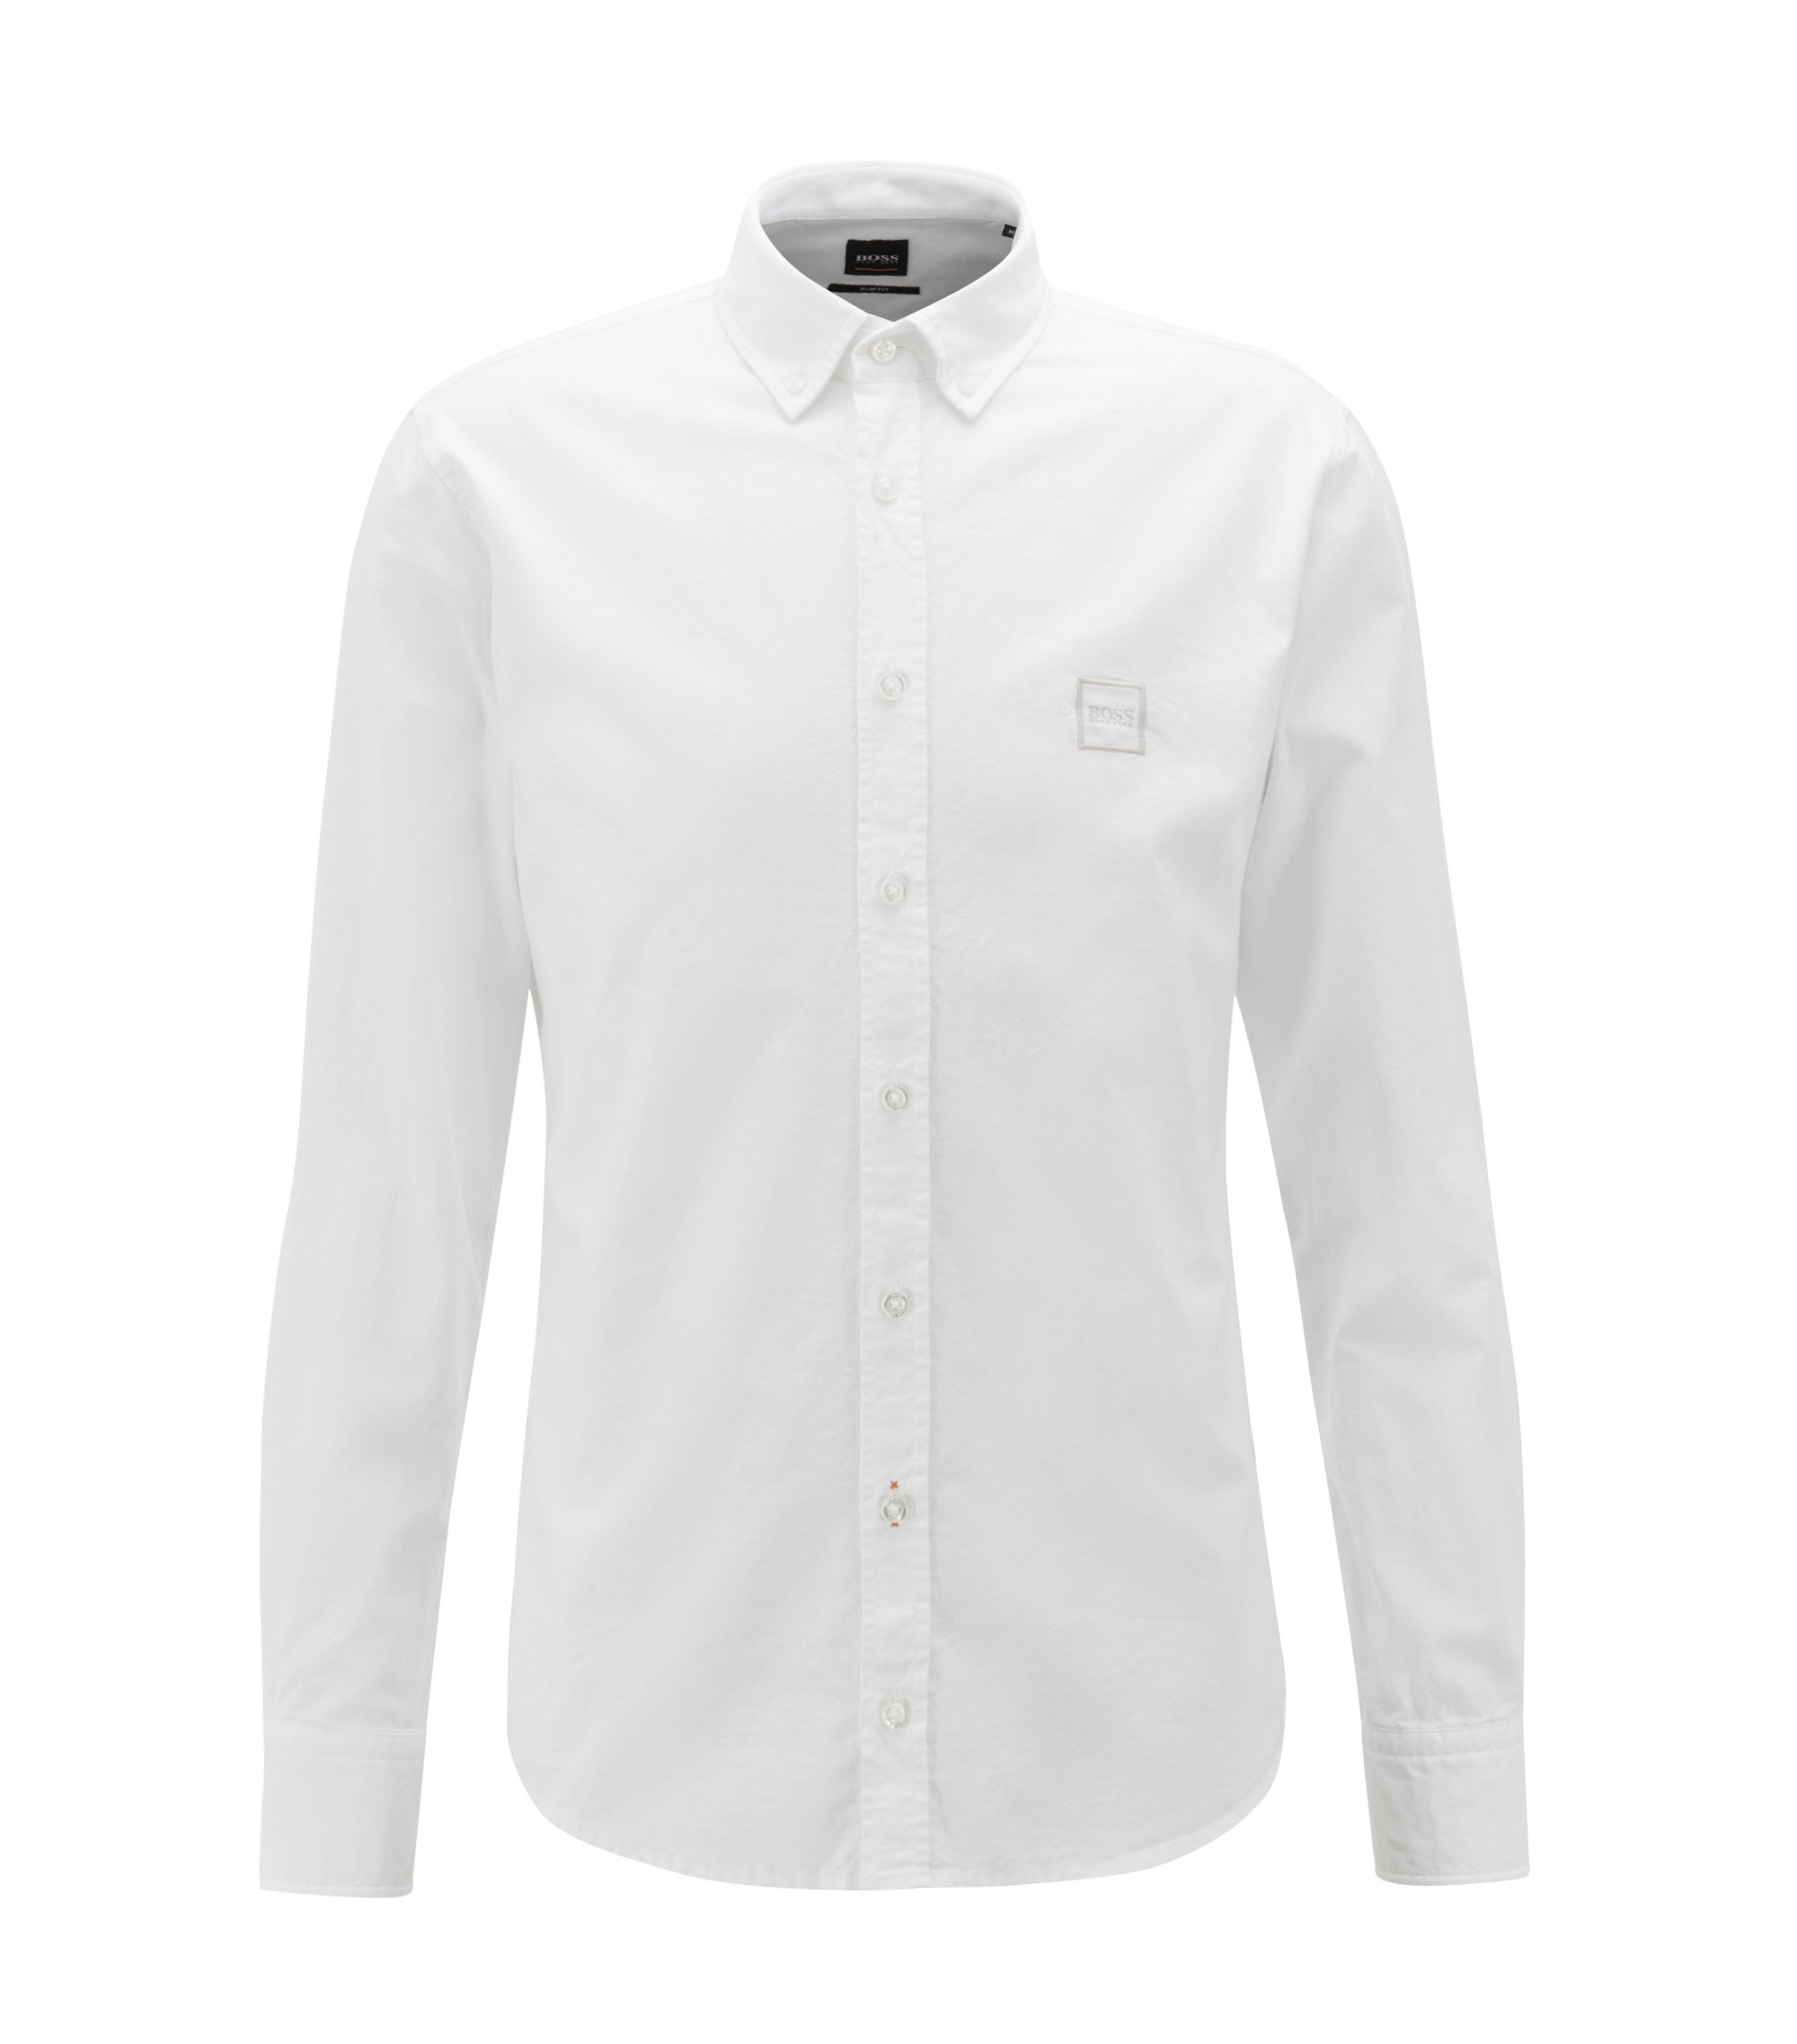 Camicia slim fit con colletto button-down in cotone manopesca, Bianco